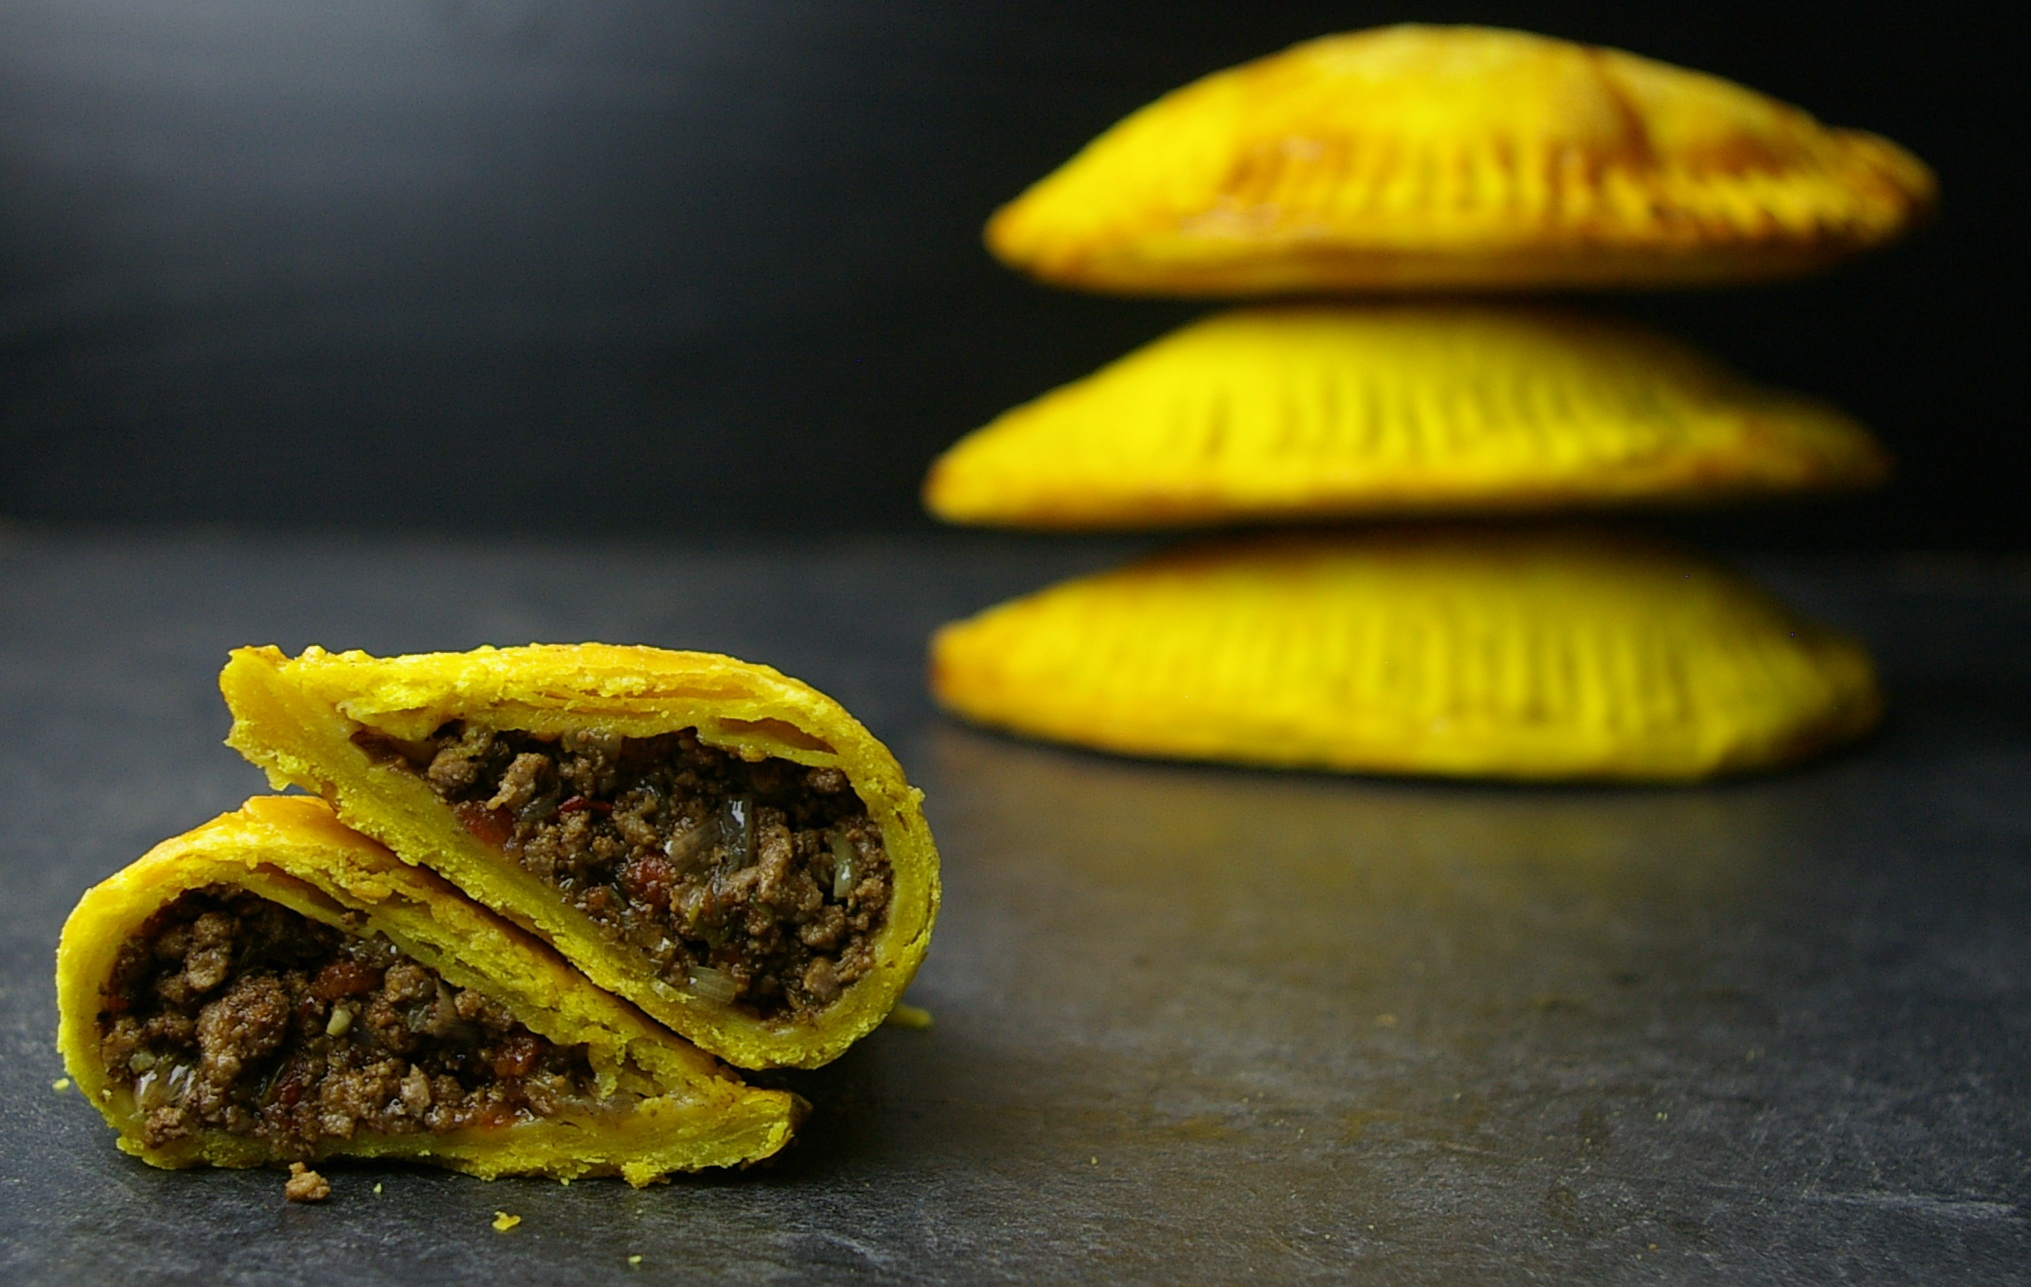 imgp0155-5-jamaican-patty-finished-2.jpg